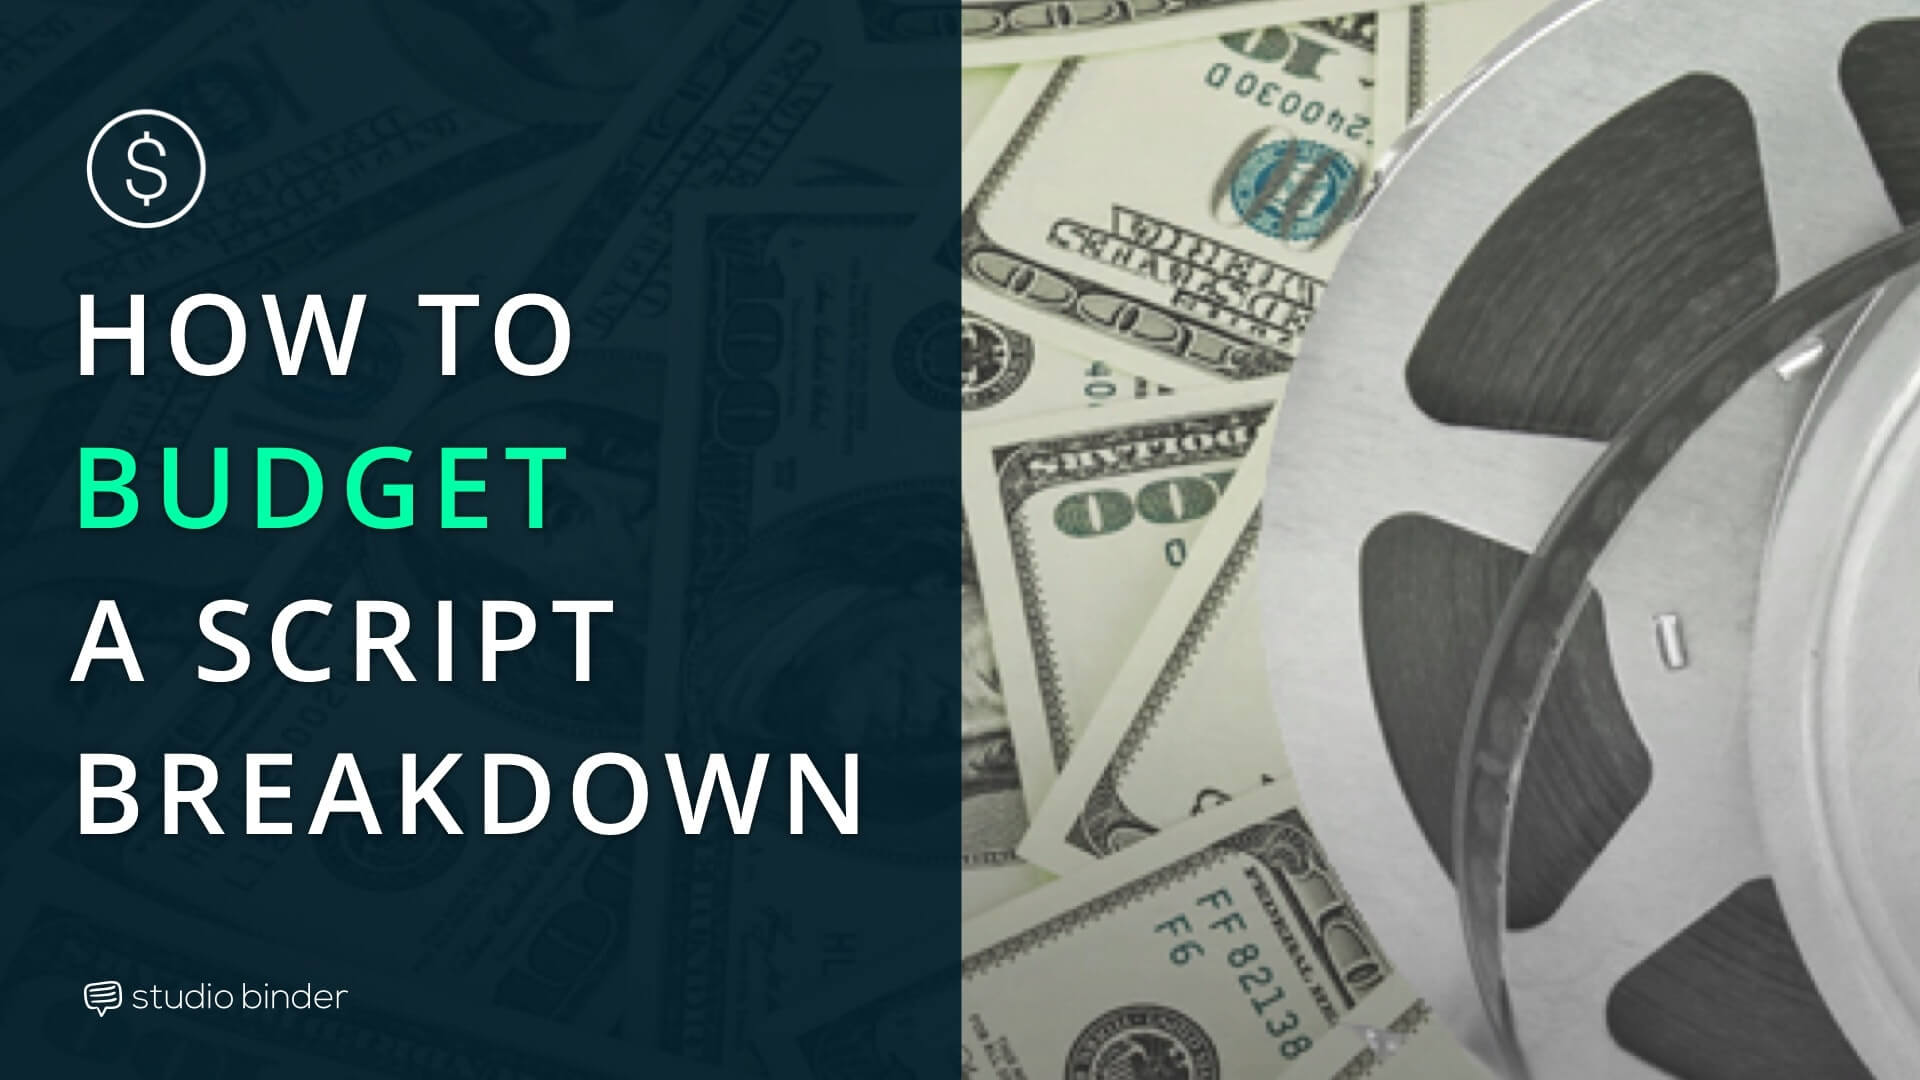 Film Budget Planning: How to Effectively Budget a Script Breakdown ...